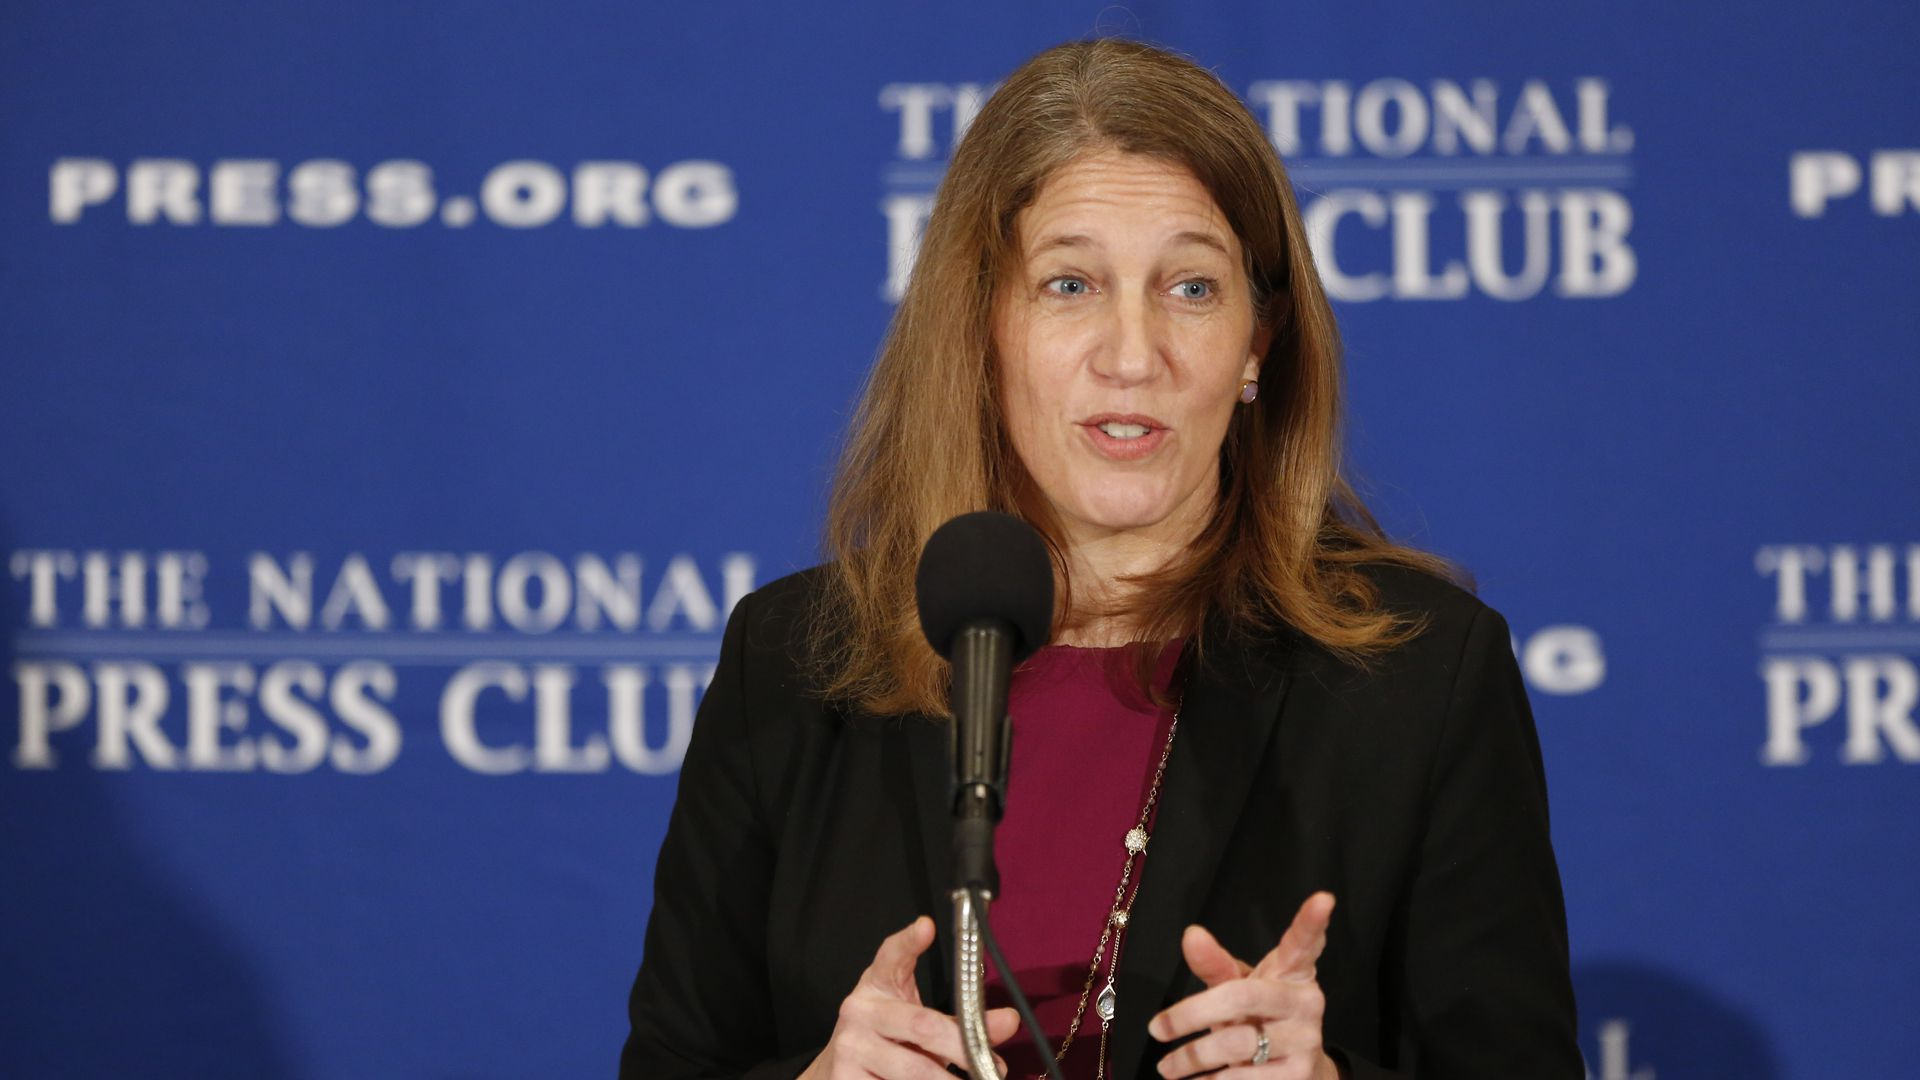 Former HHS Secretary Sylvia Mathews Burwell speaks at an event.